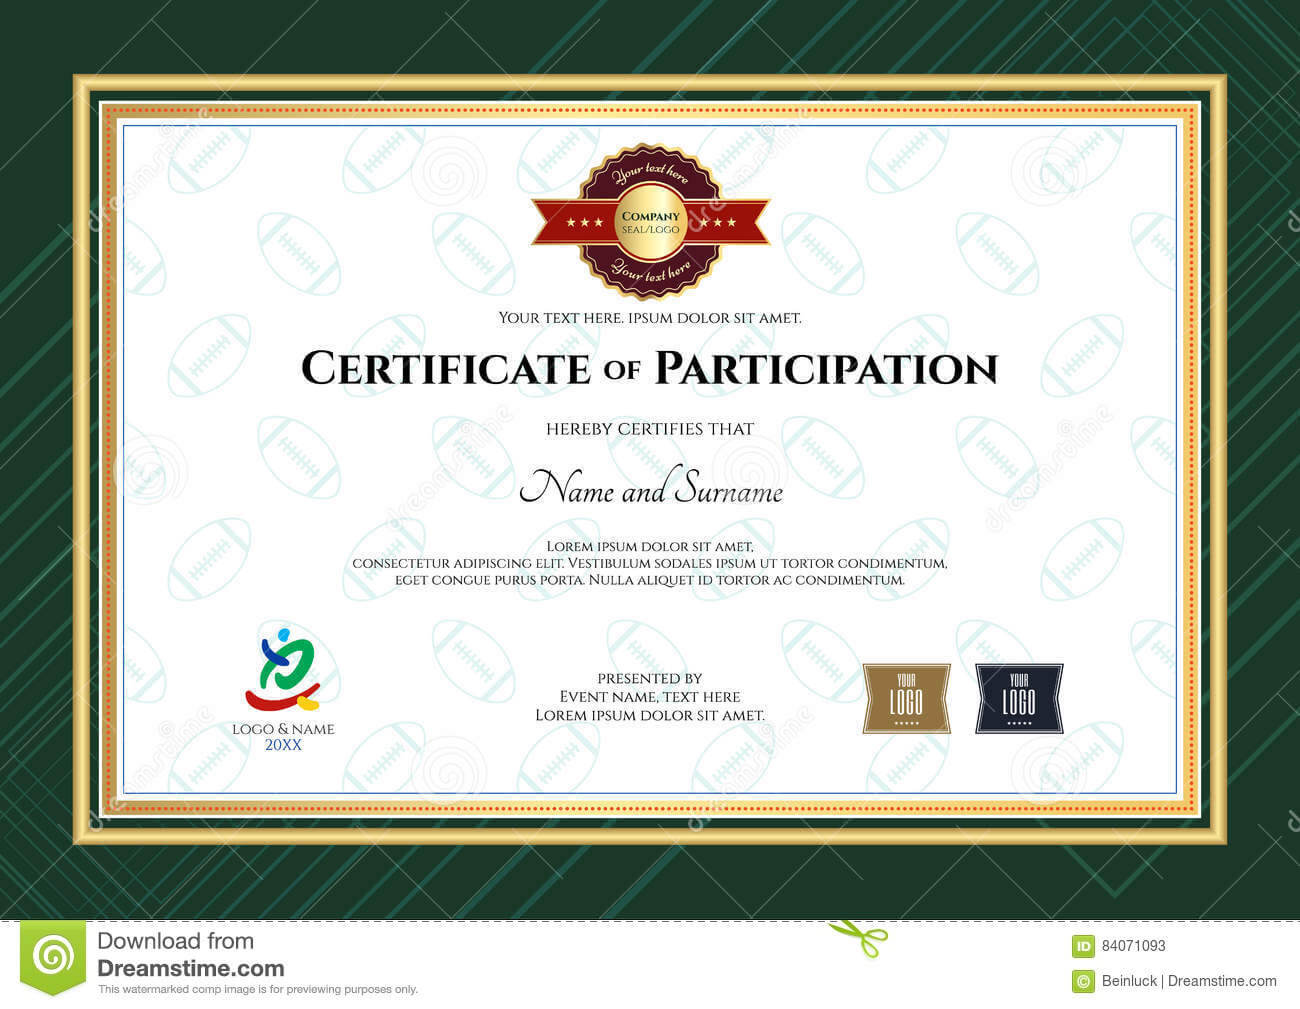 Rugby League Certificate Templates - Atlantaauctionco inside Rugby League Certificate Templates